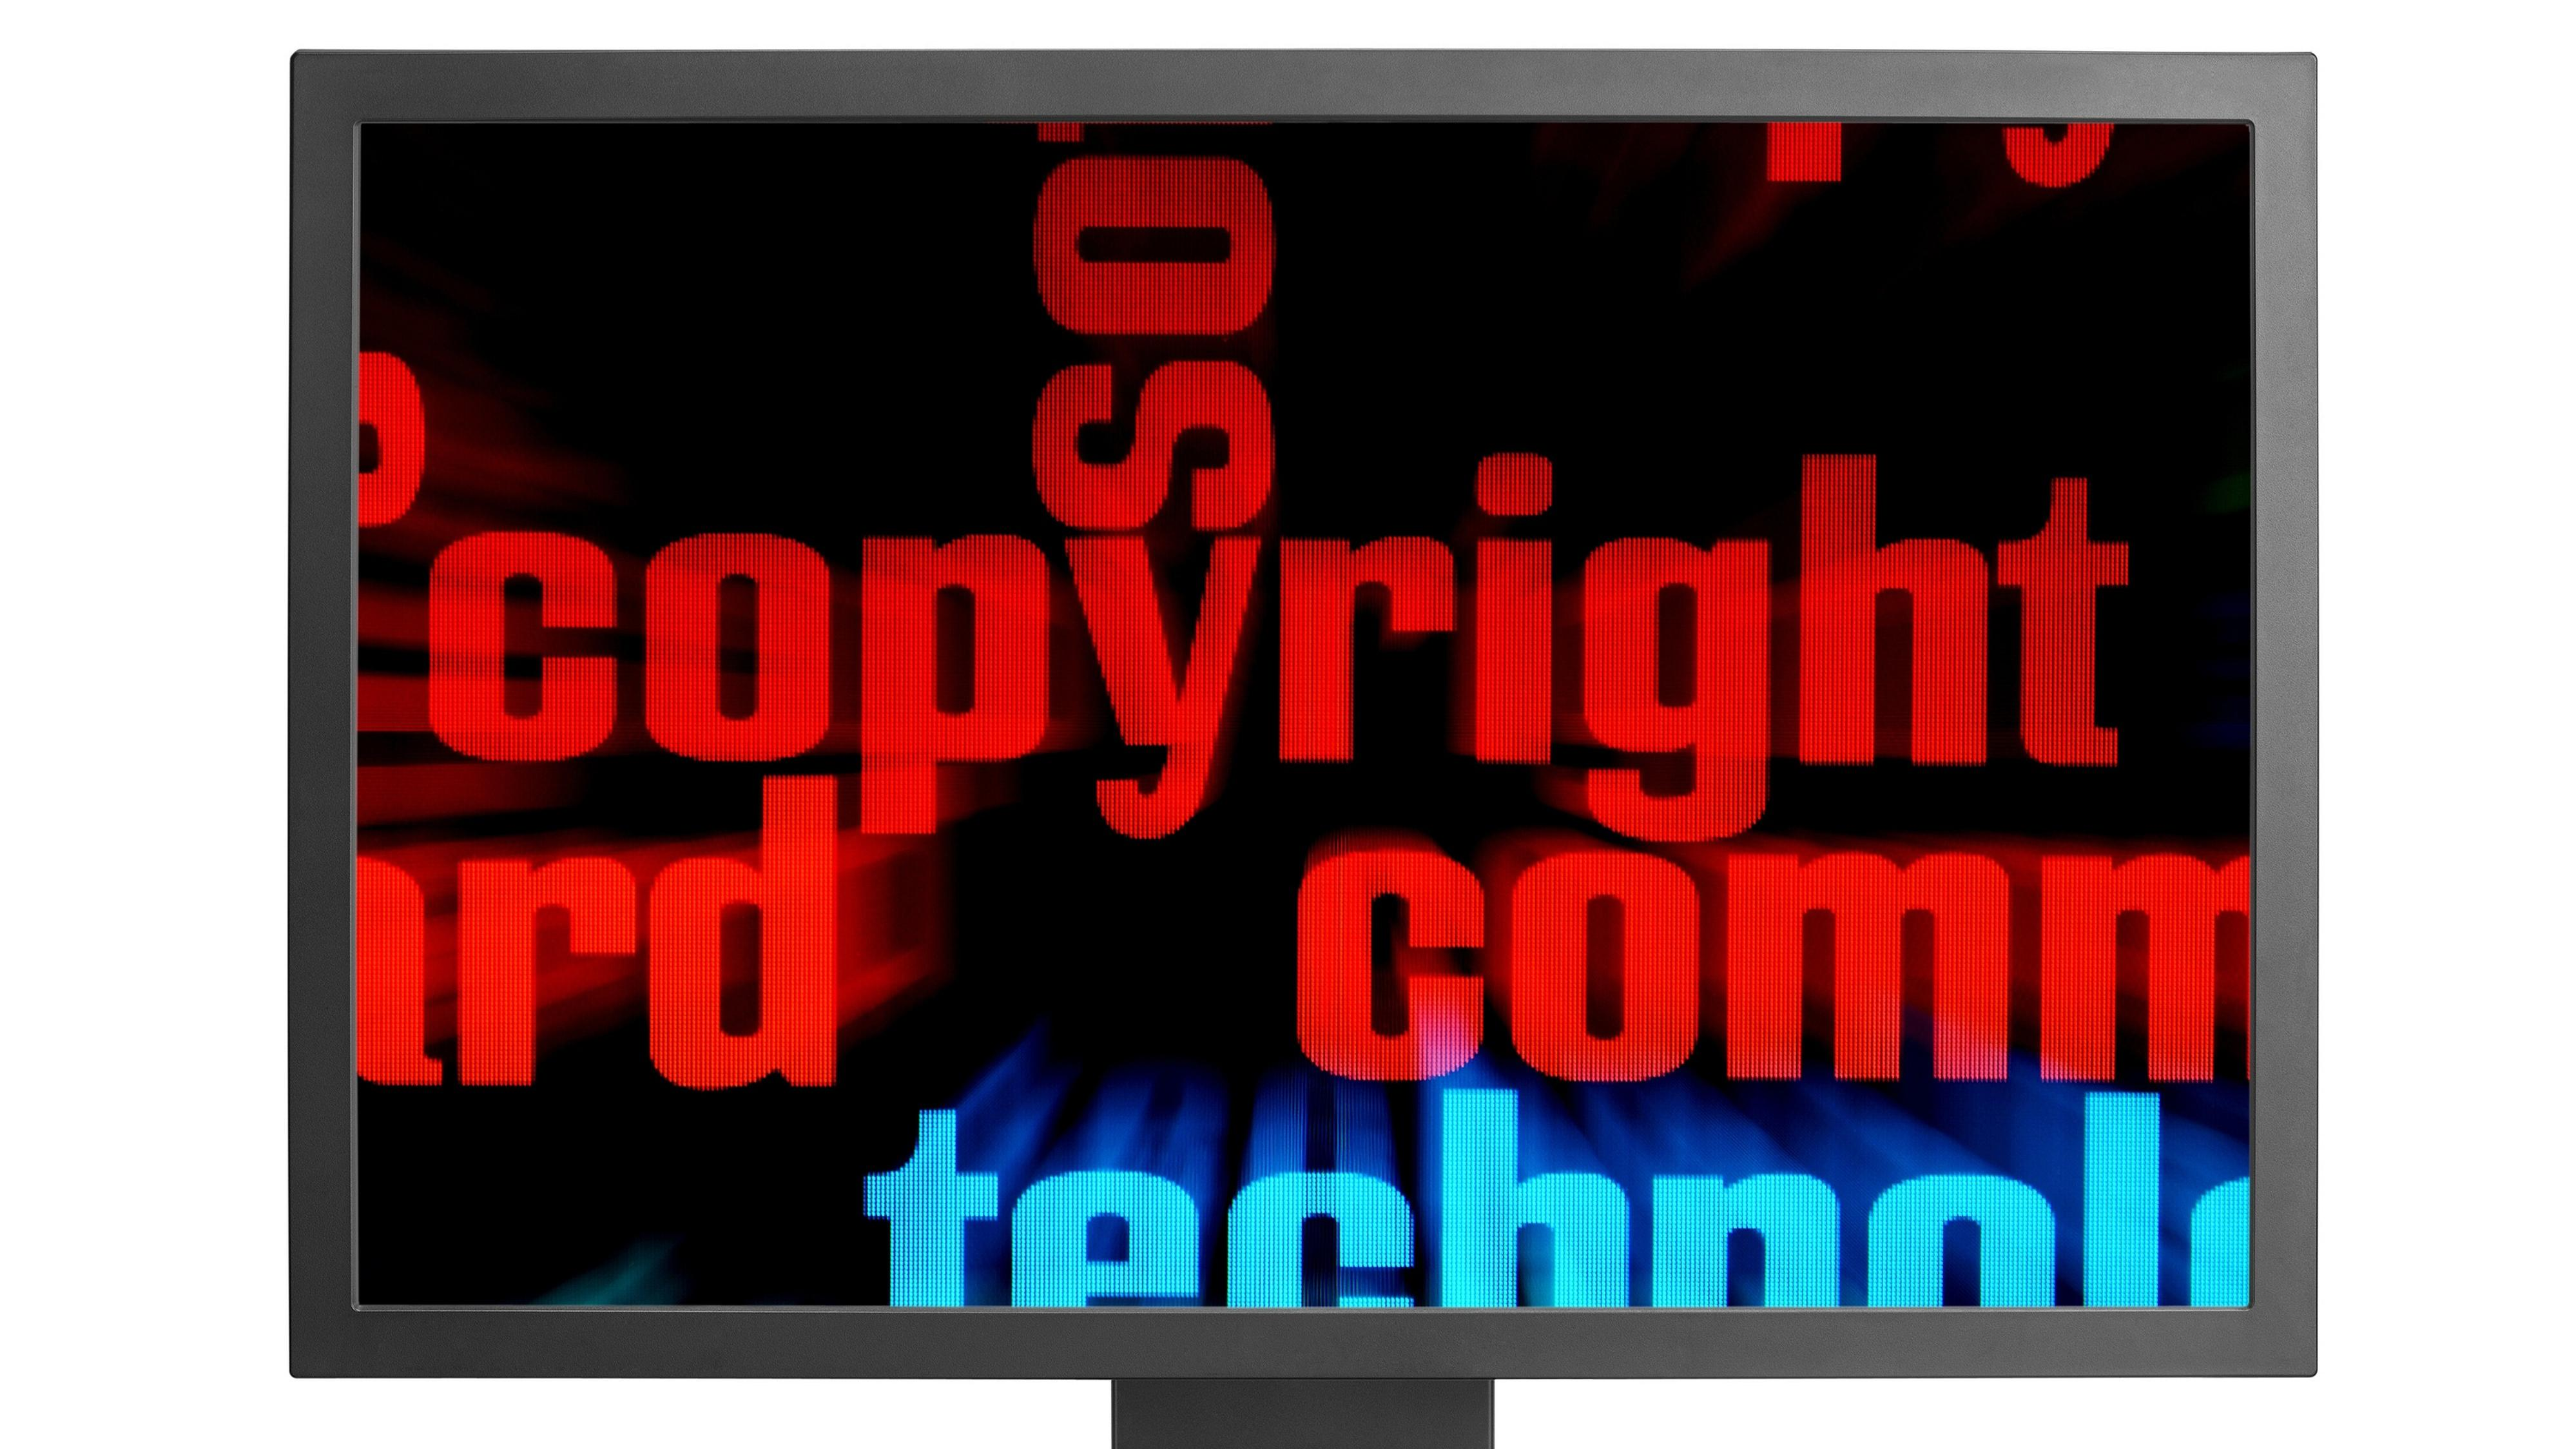 Red lettering reading copyright on a black computer screen